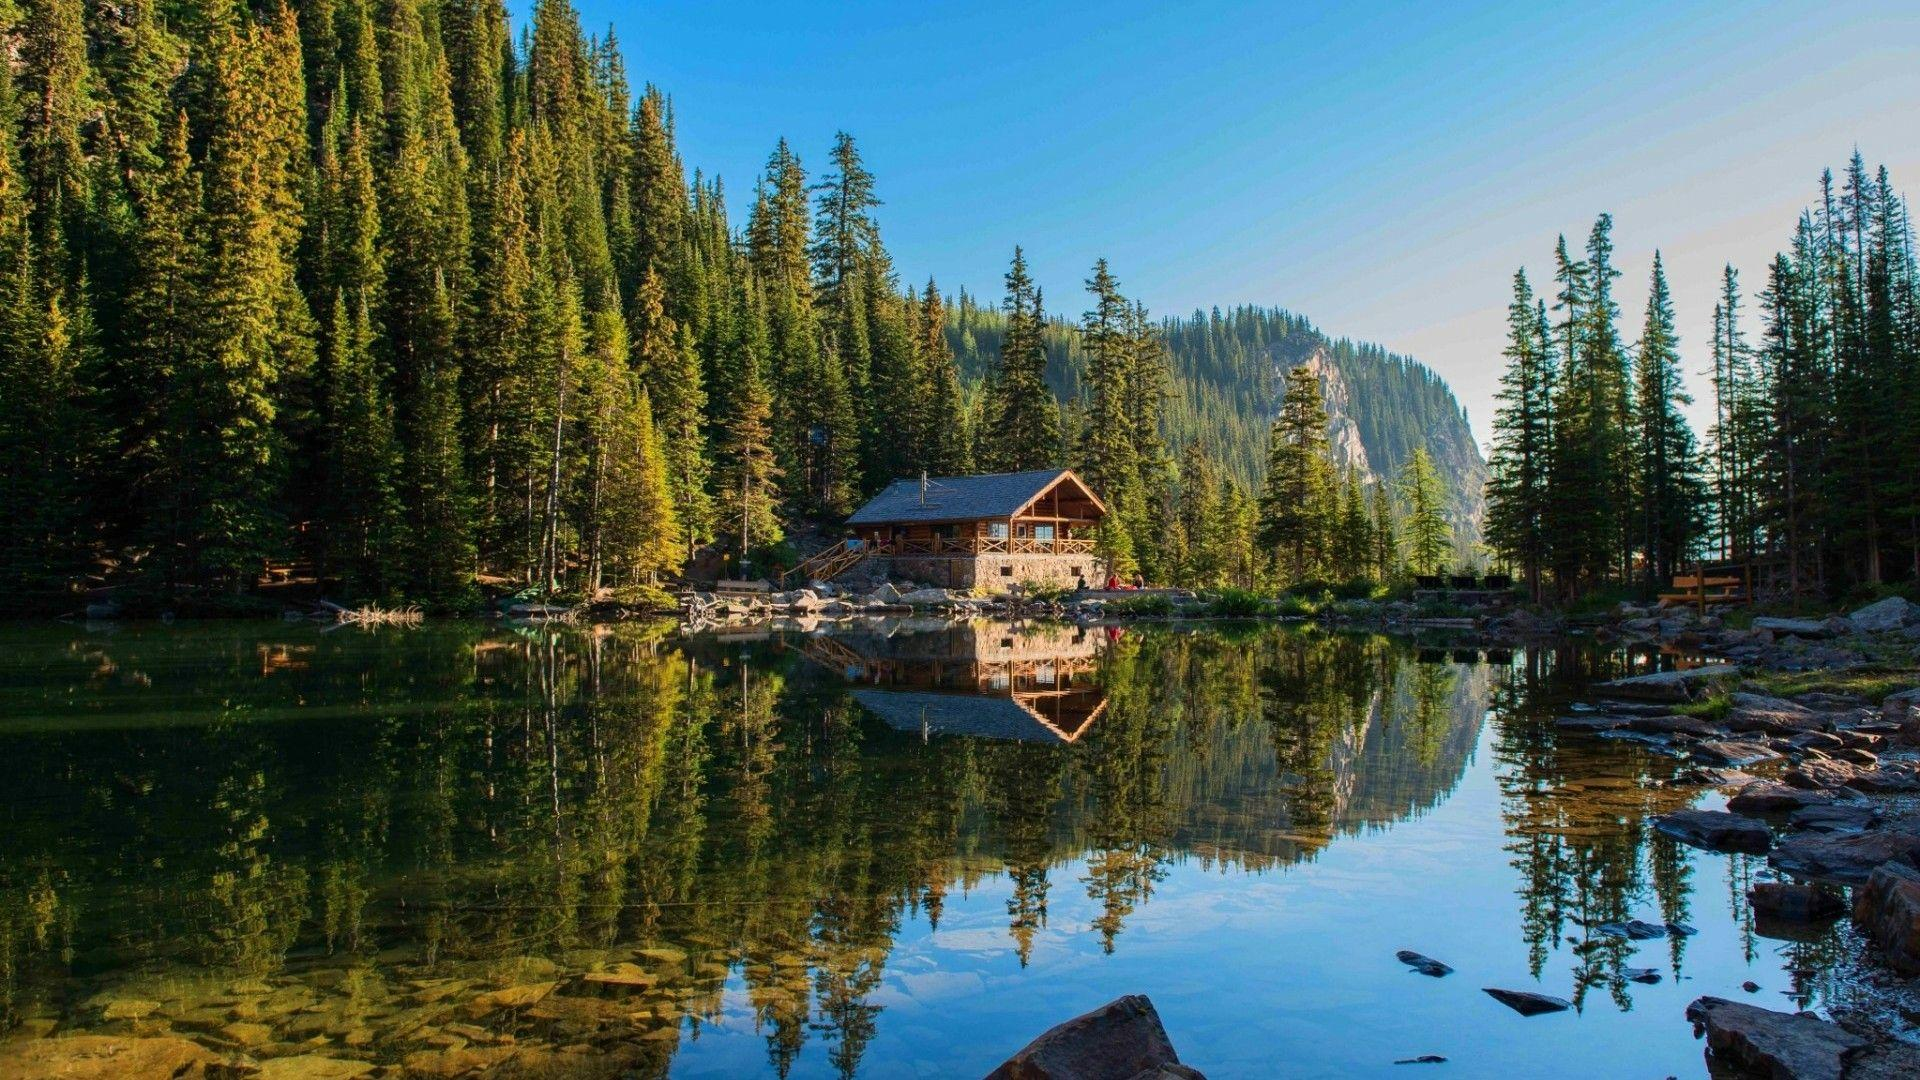 Mountain Cabin Lake Trees Nature Landscape HD POSTER